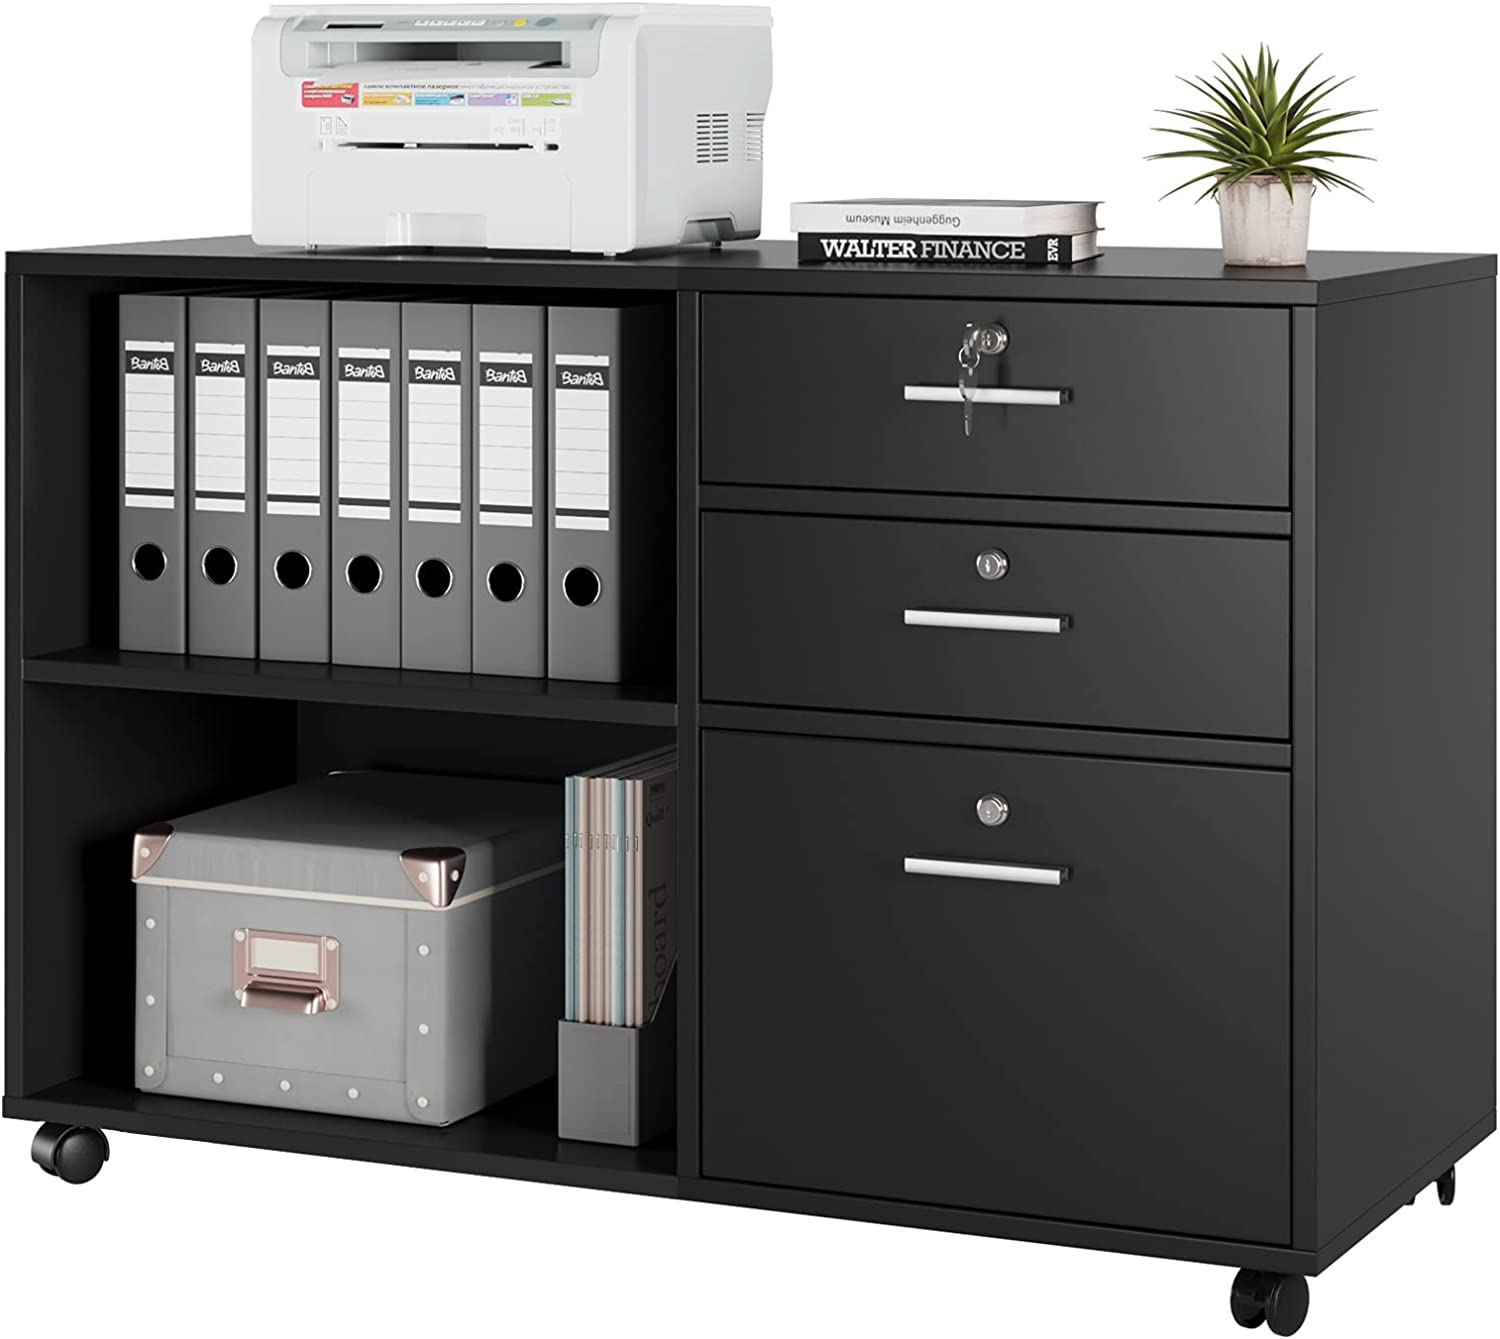 Kealive 3 Drawers File Cabinet, Wood Mobile Lateral Filing Cabinet with Lock, Modern Printer Stand with Open Storage Shelves for Home Office, Lockable Casters, Black